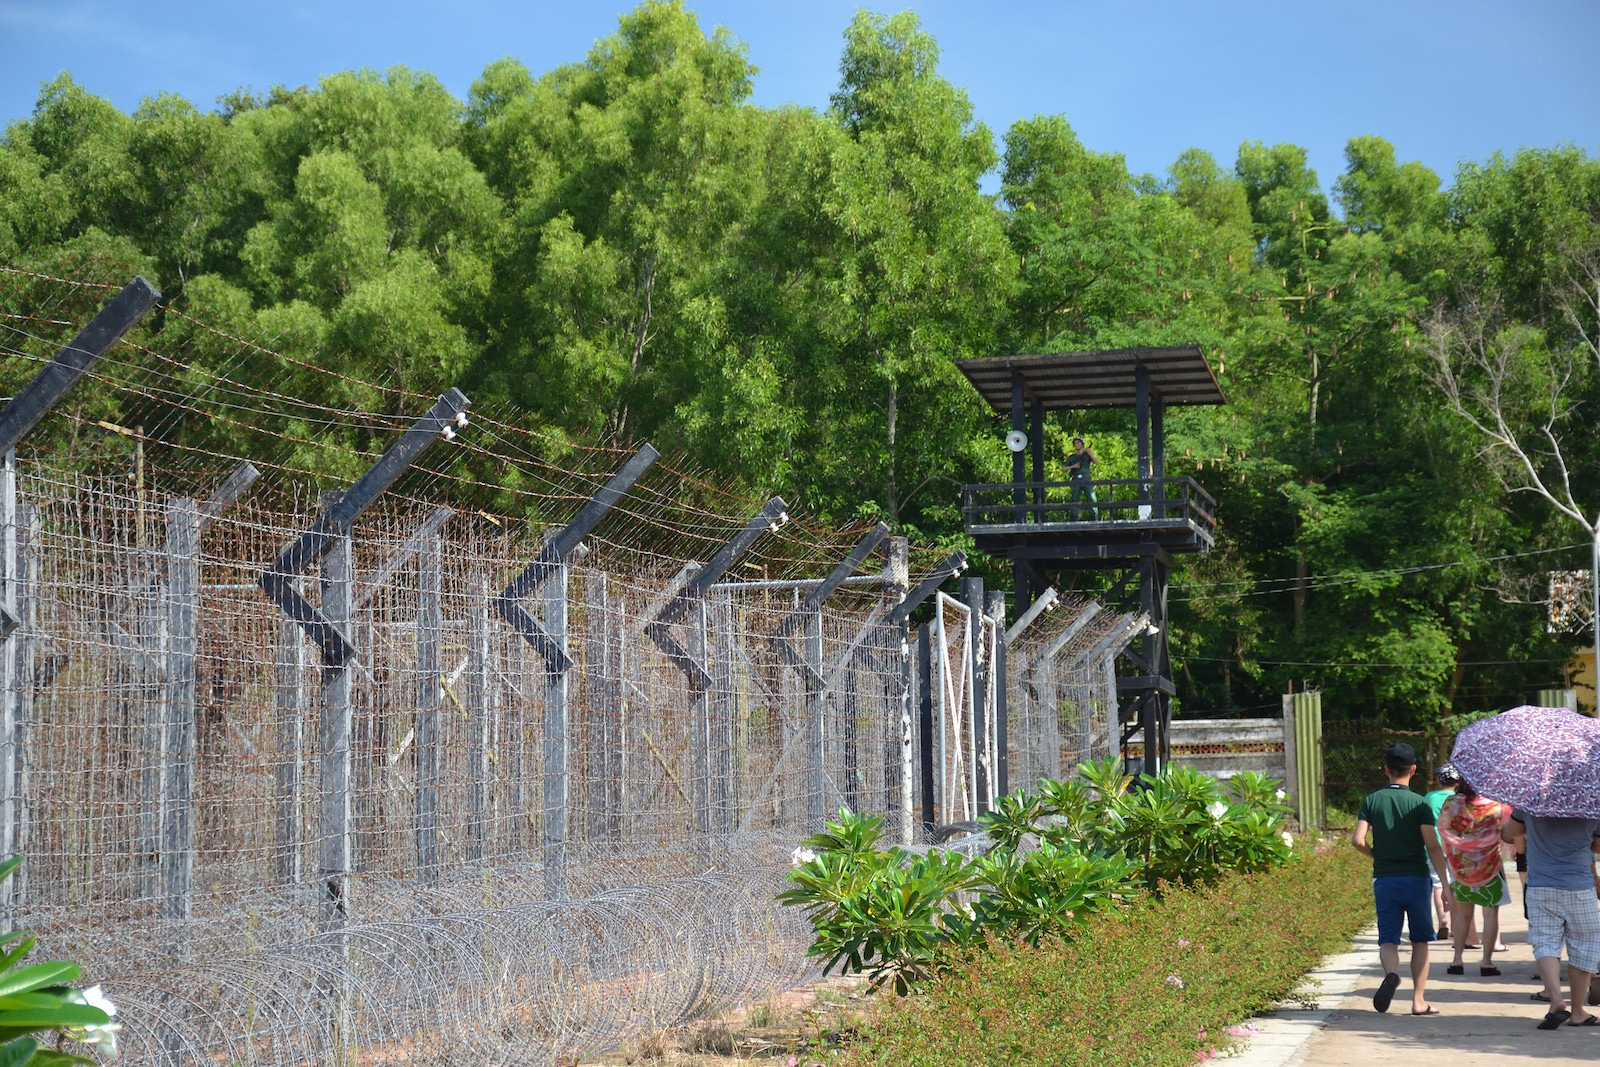 Image of a guard stand at the Phu Quoc Prison Museum in Vietnam